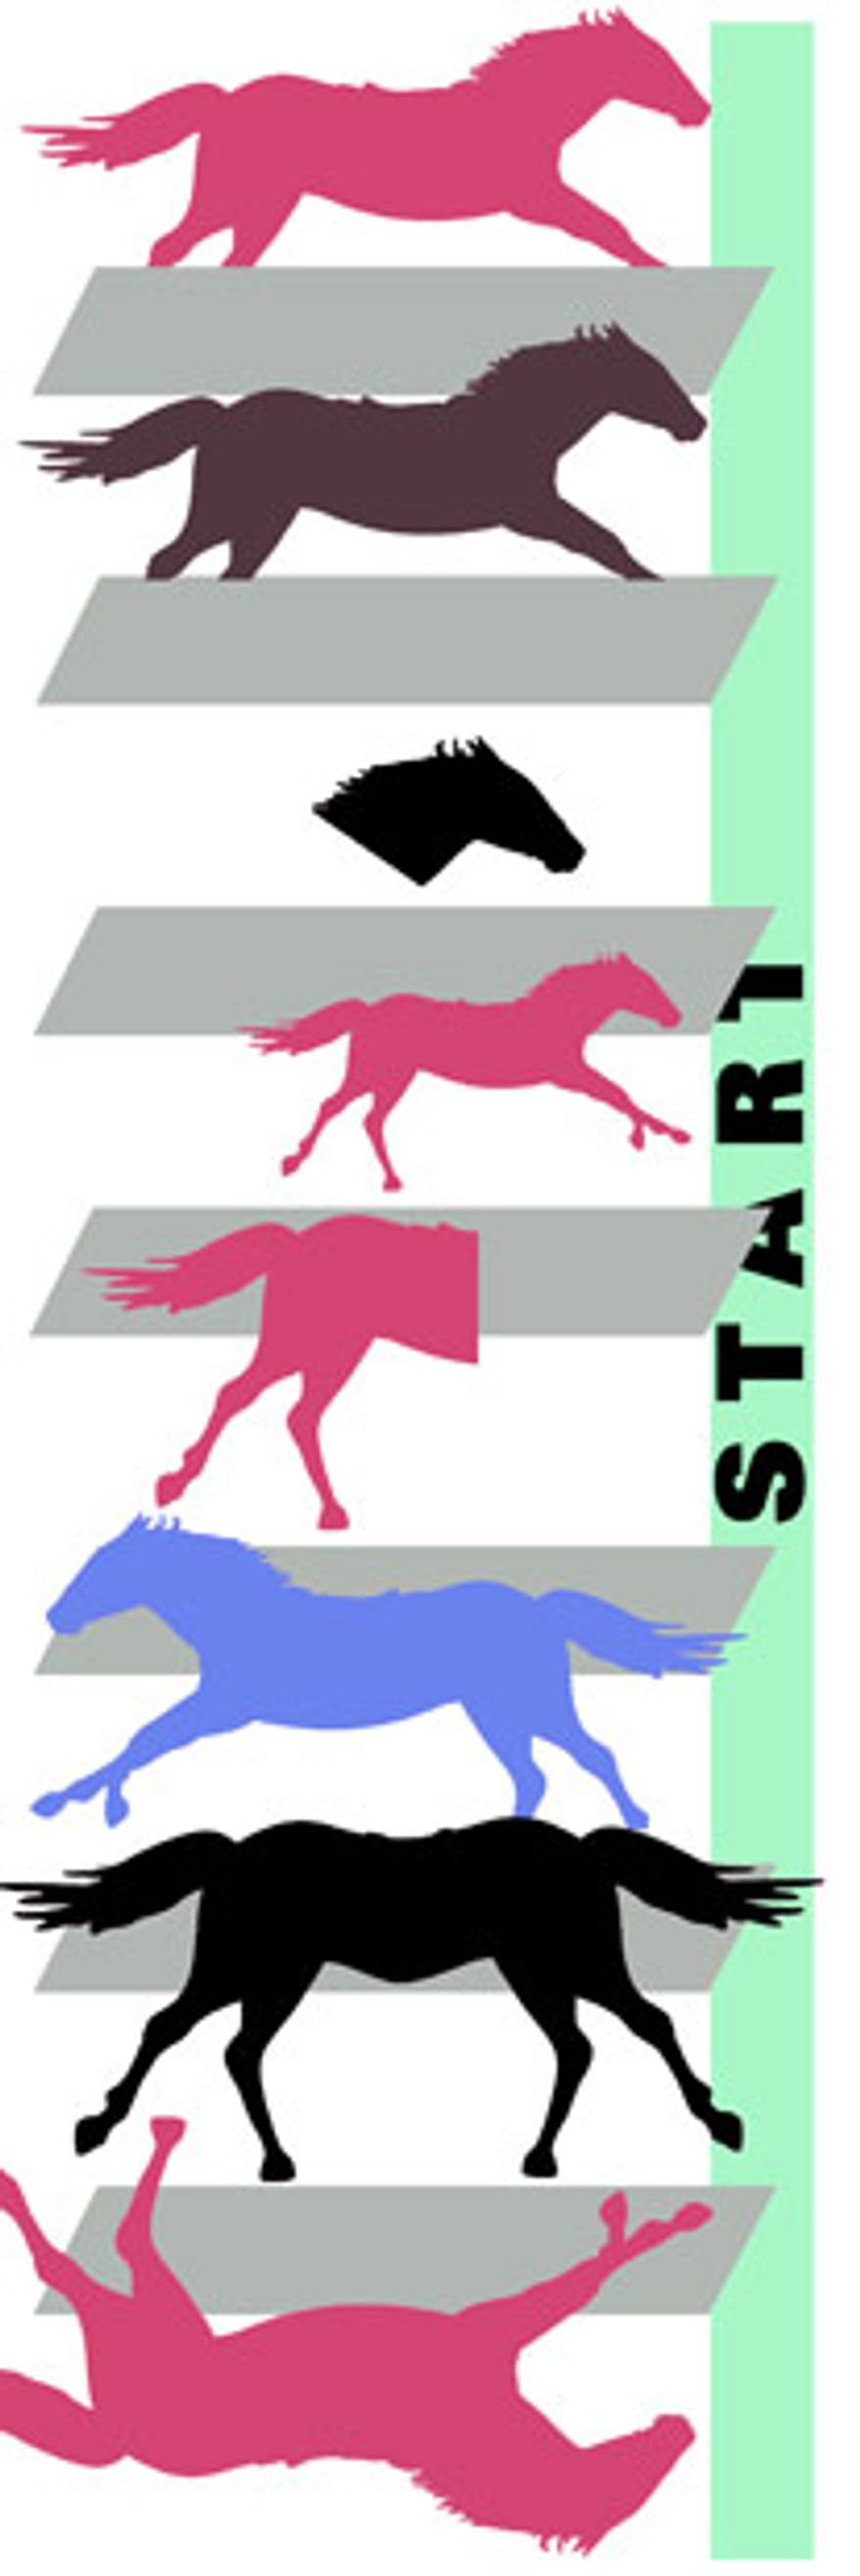 Illustration: Horse race